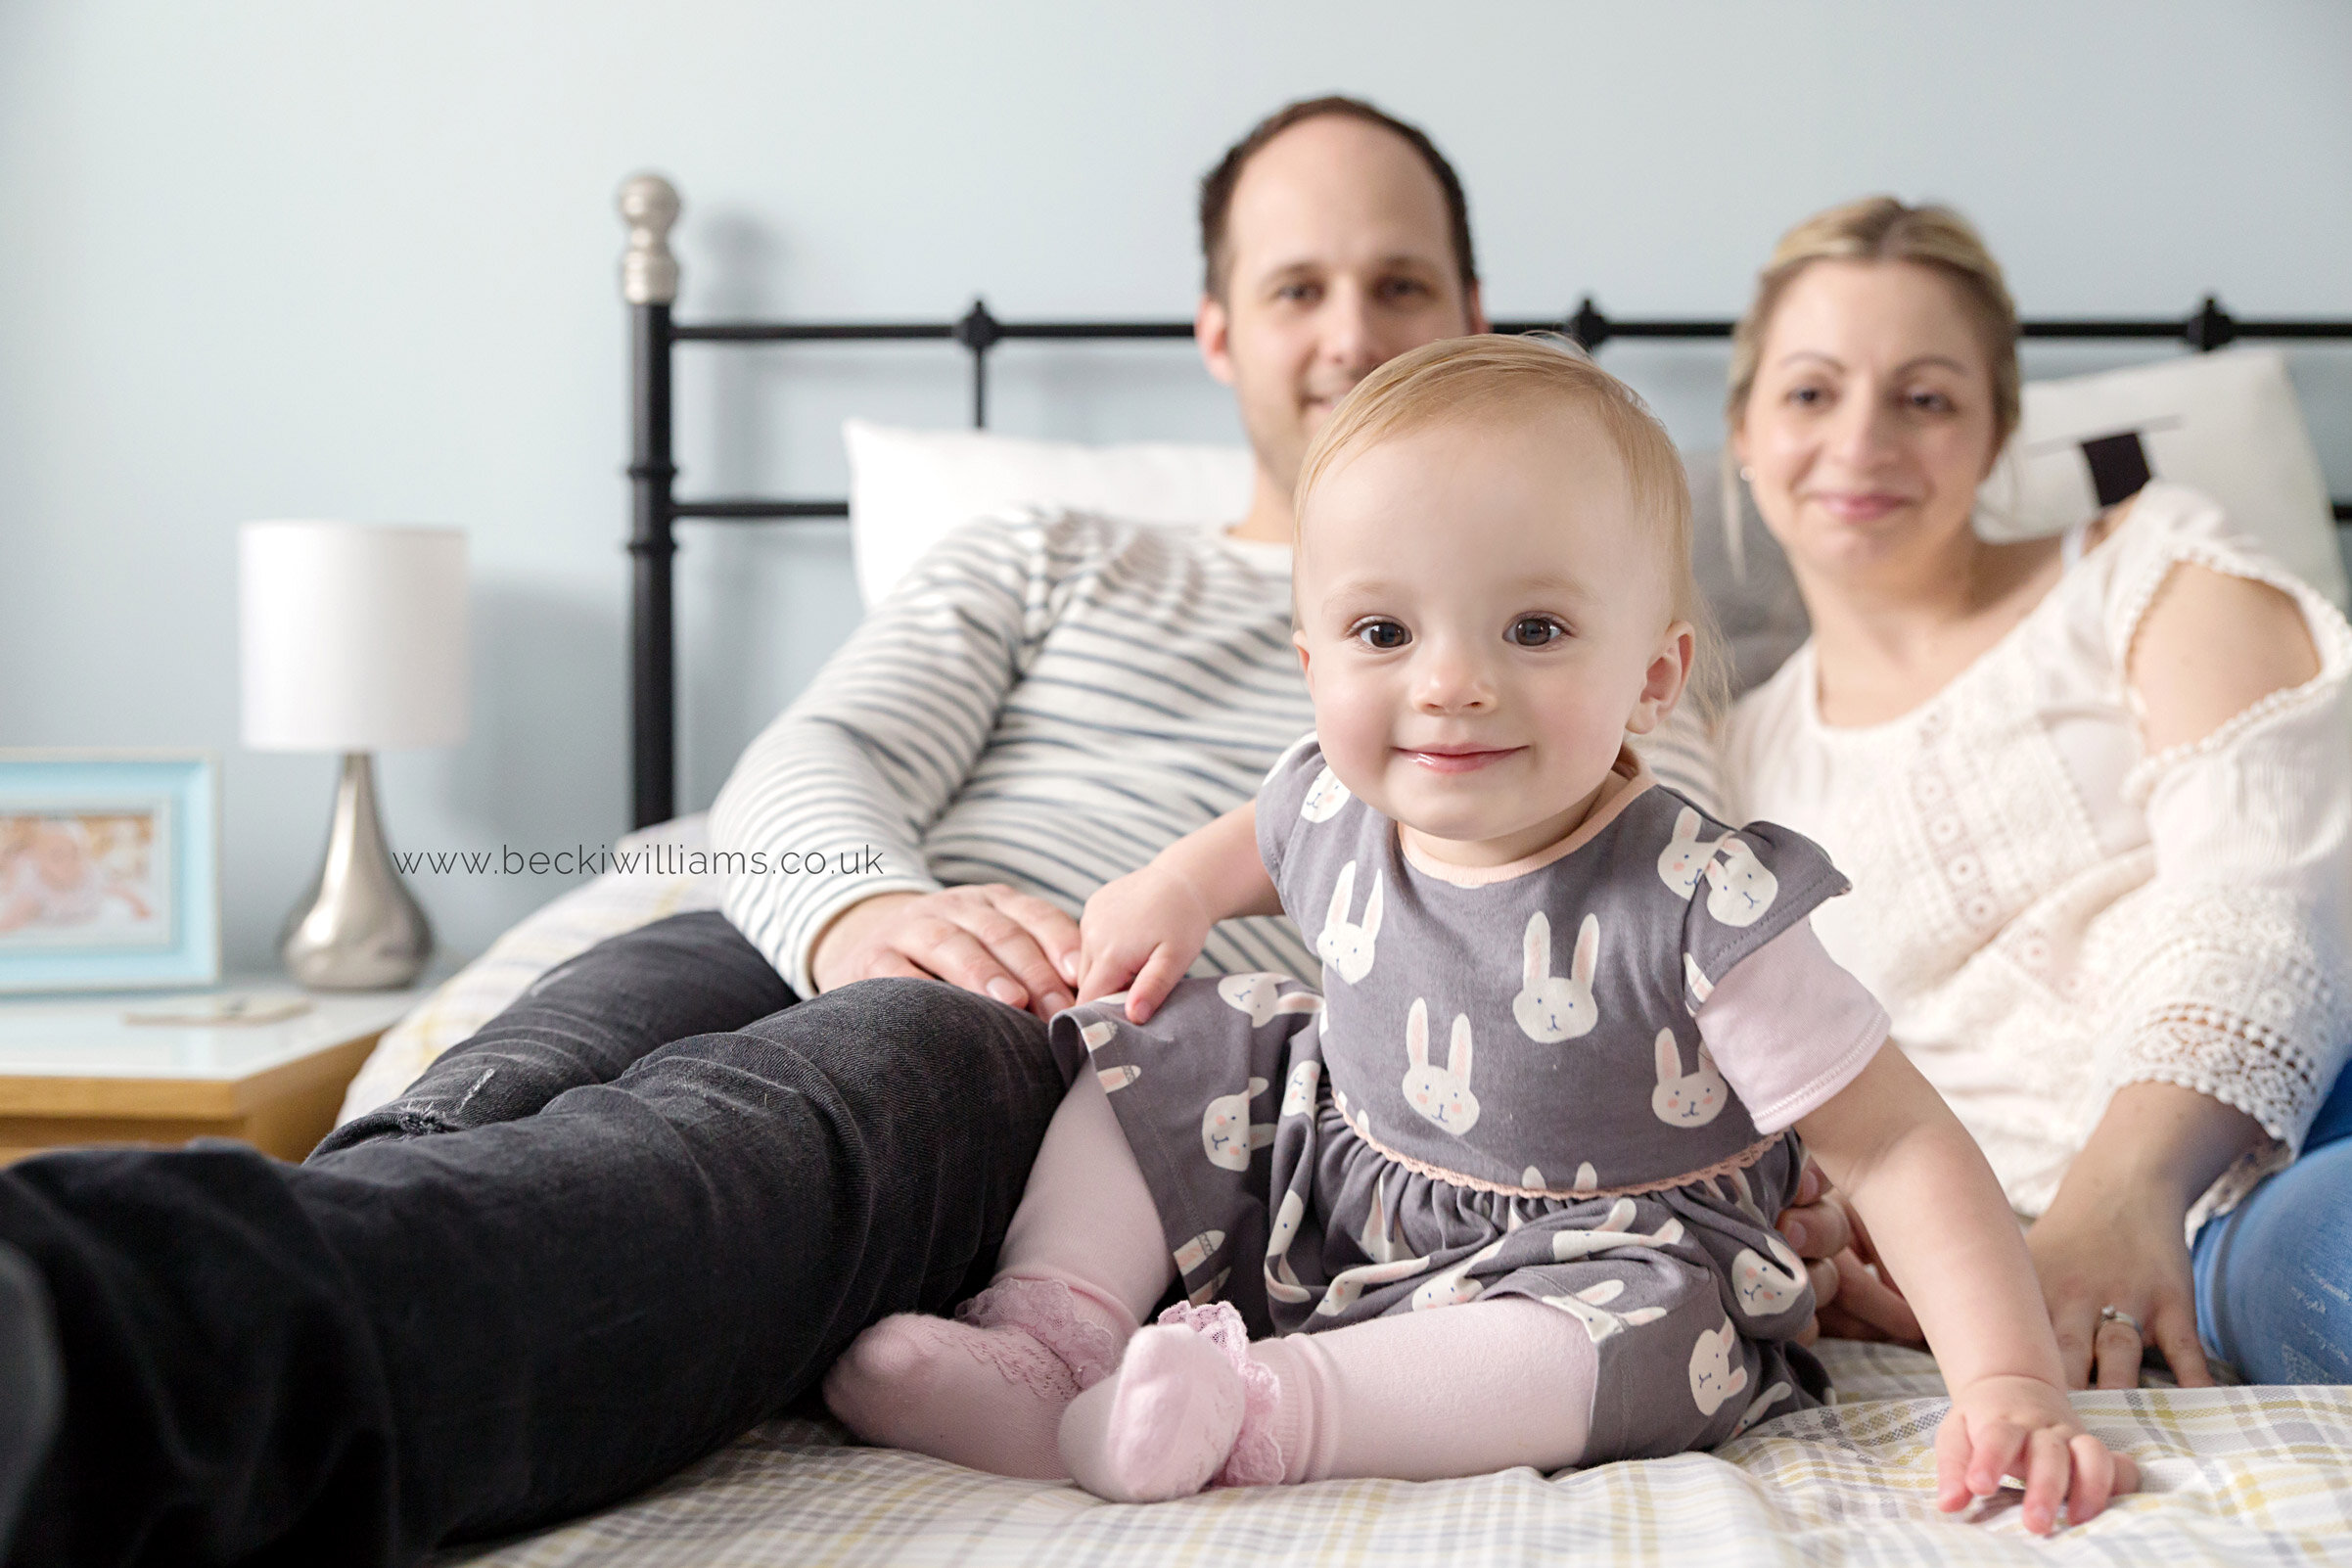 lifestyle-baby-photography-in-your-home-hemel-hempstead-family-cute-happy.jpg